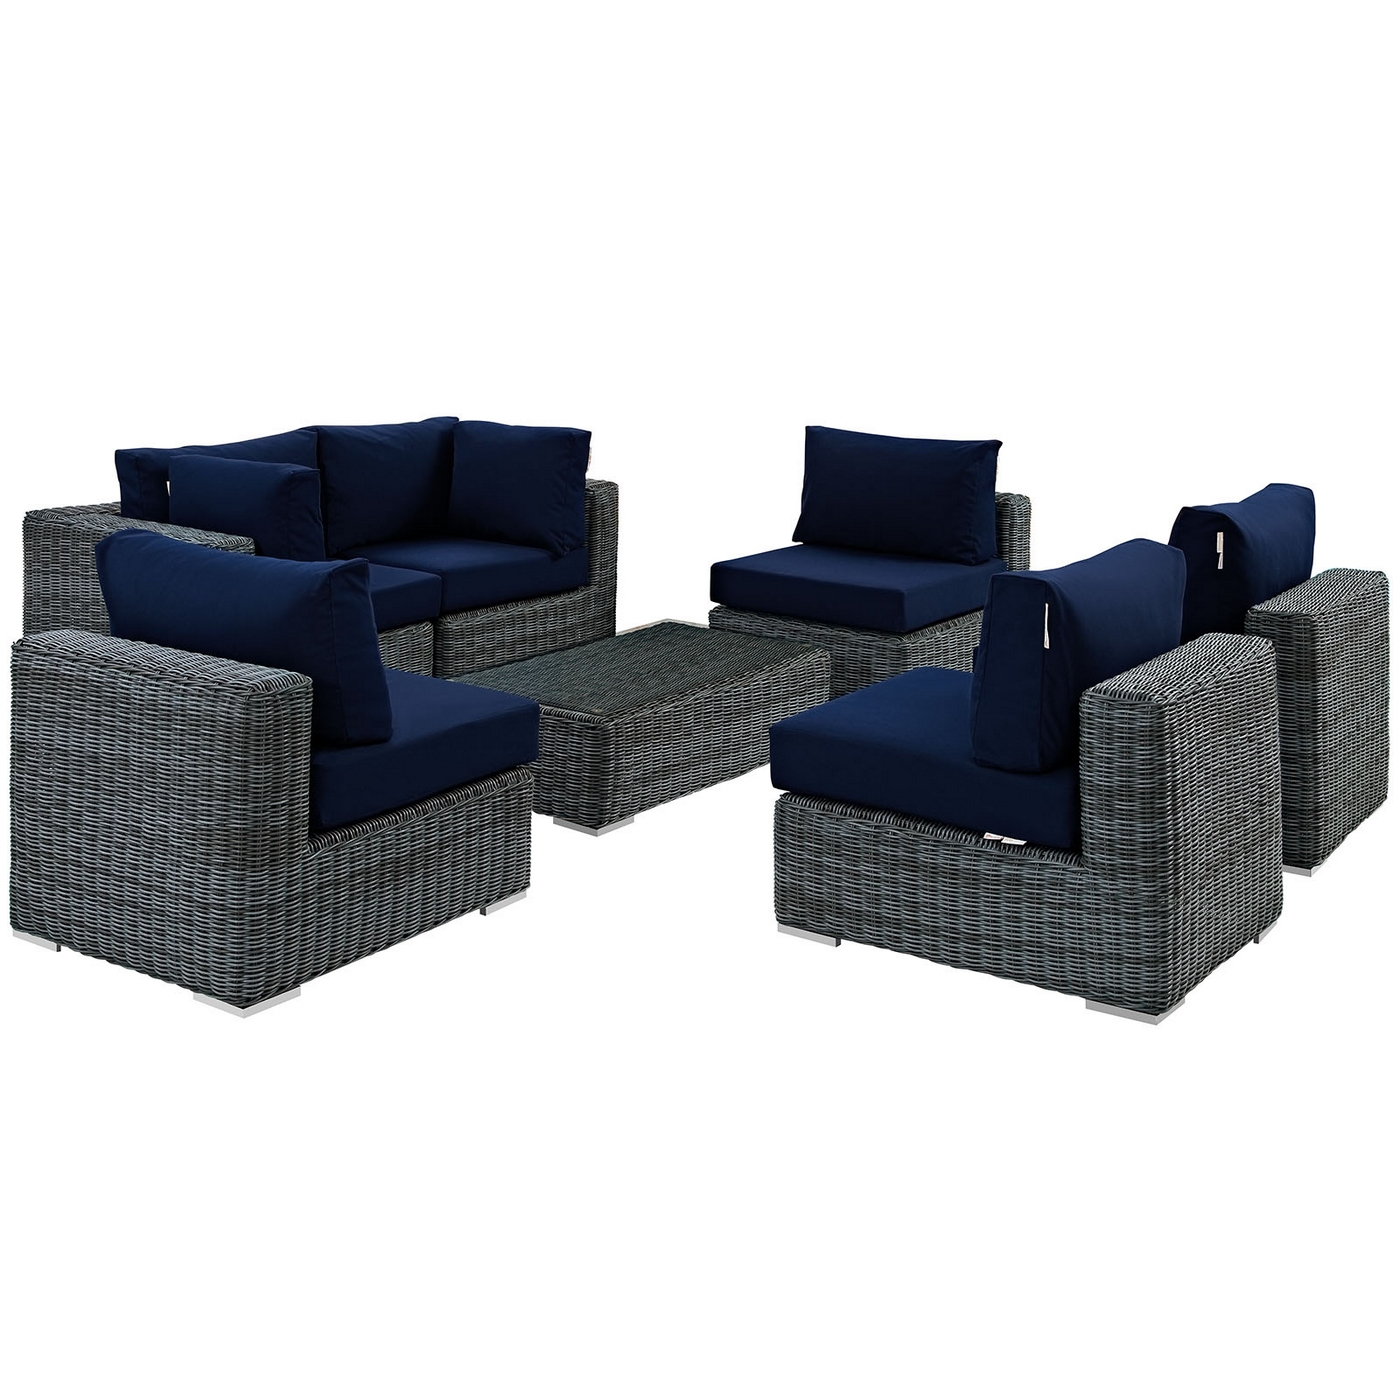 Pleasant Details About Summon Rattan 7 Piece Patio Sunbrella Sectional Sofa Set W Cushions Navy Blue Cjindustries Chair Design For Home Cjindustriesco